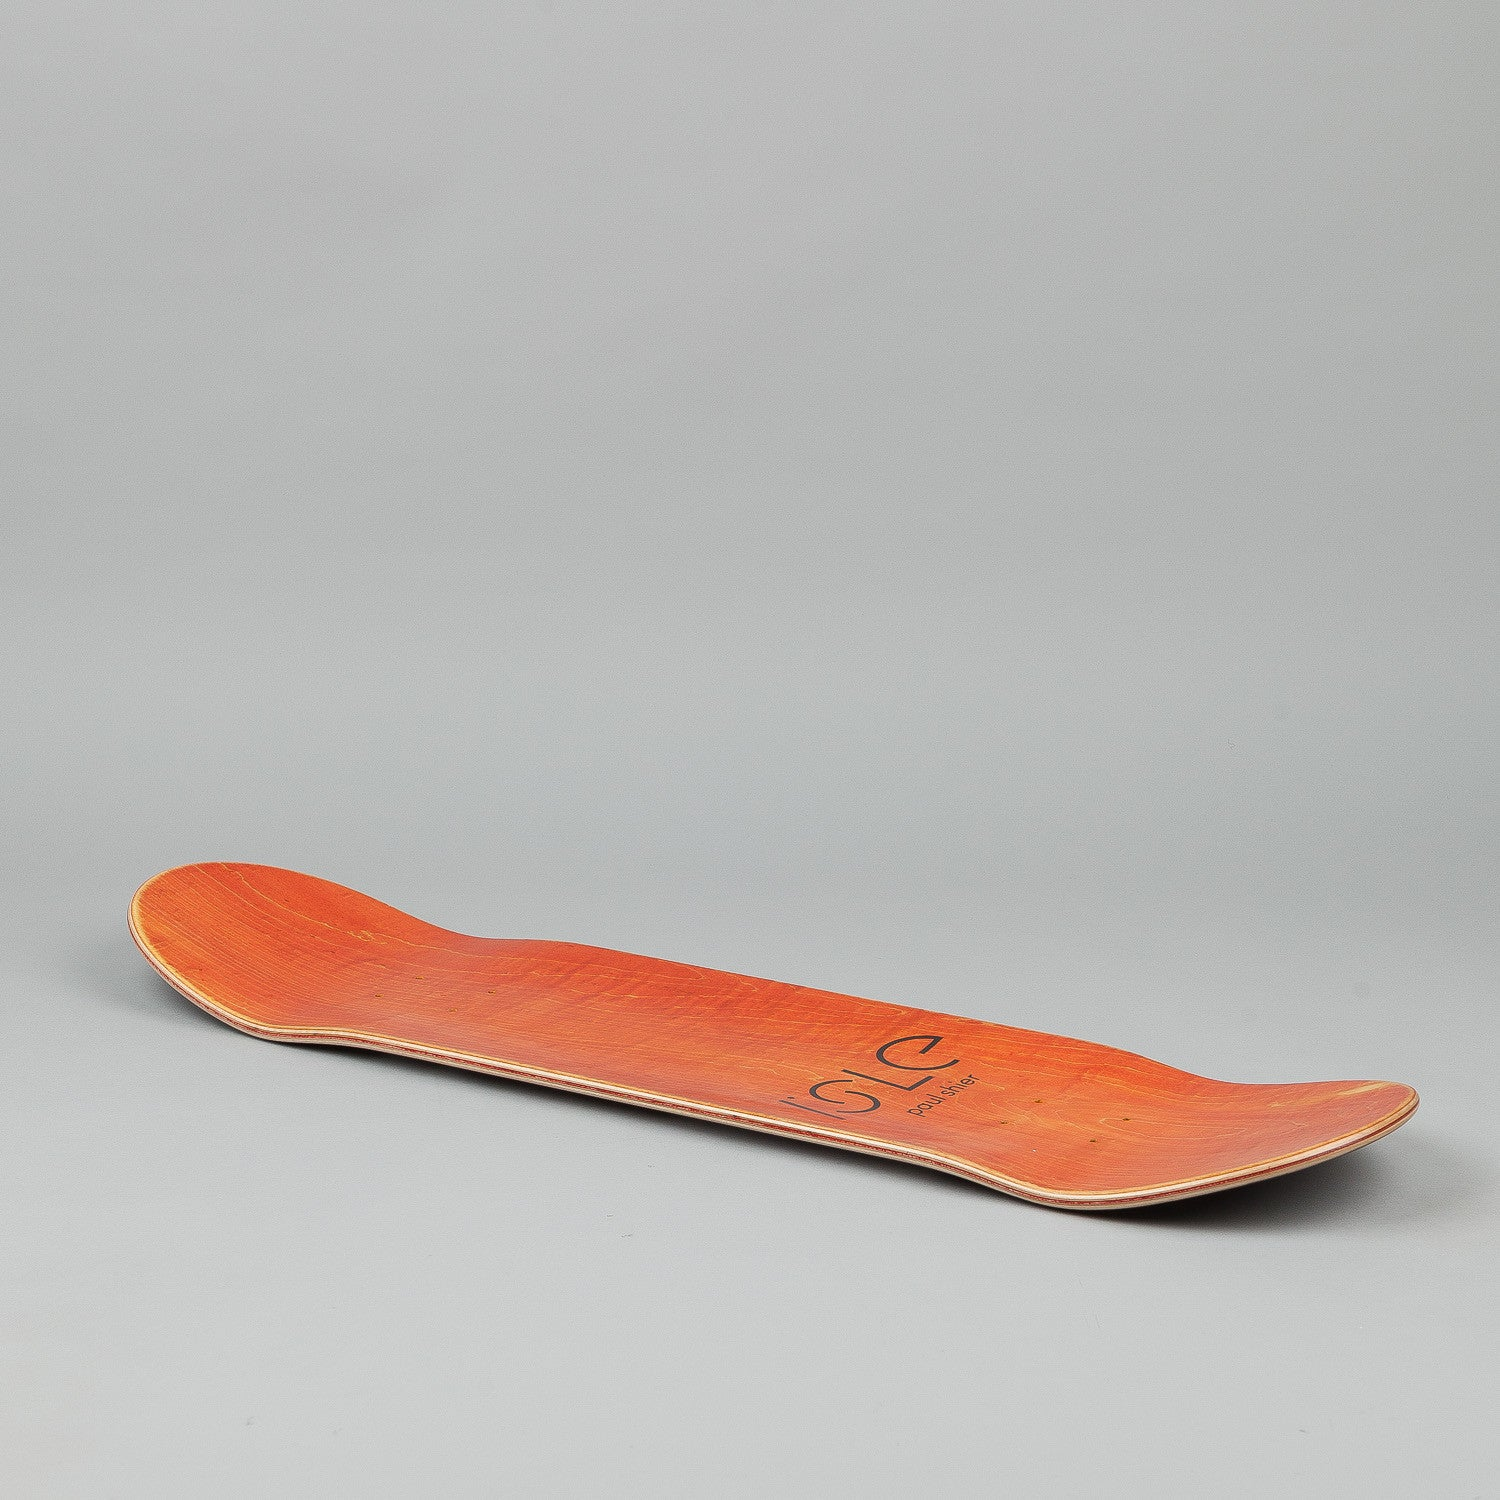 Isle Push Pull Series II Deck - Paul Shier 8.5""